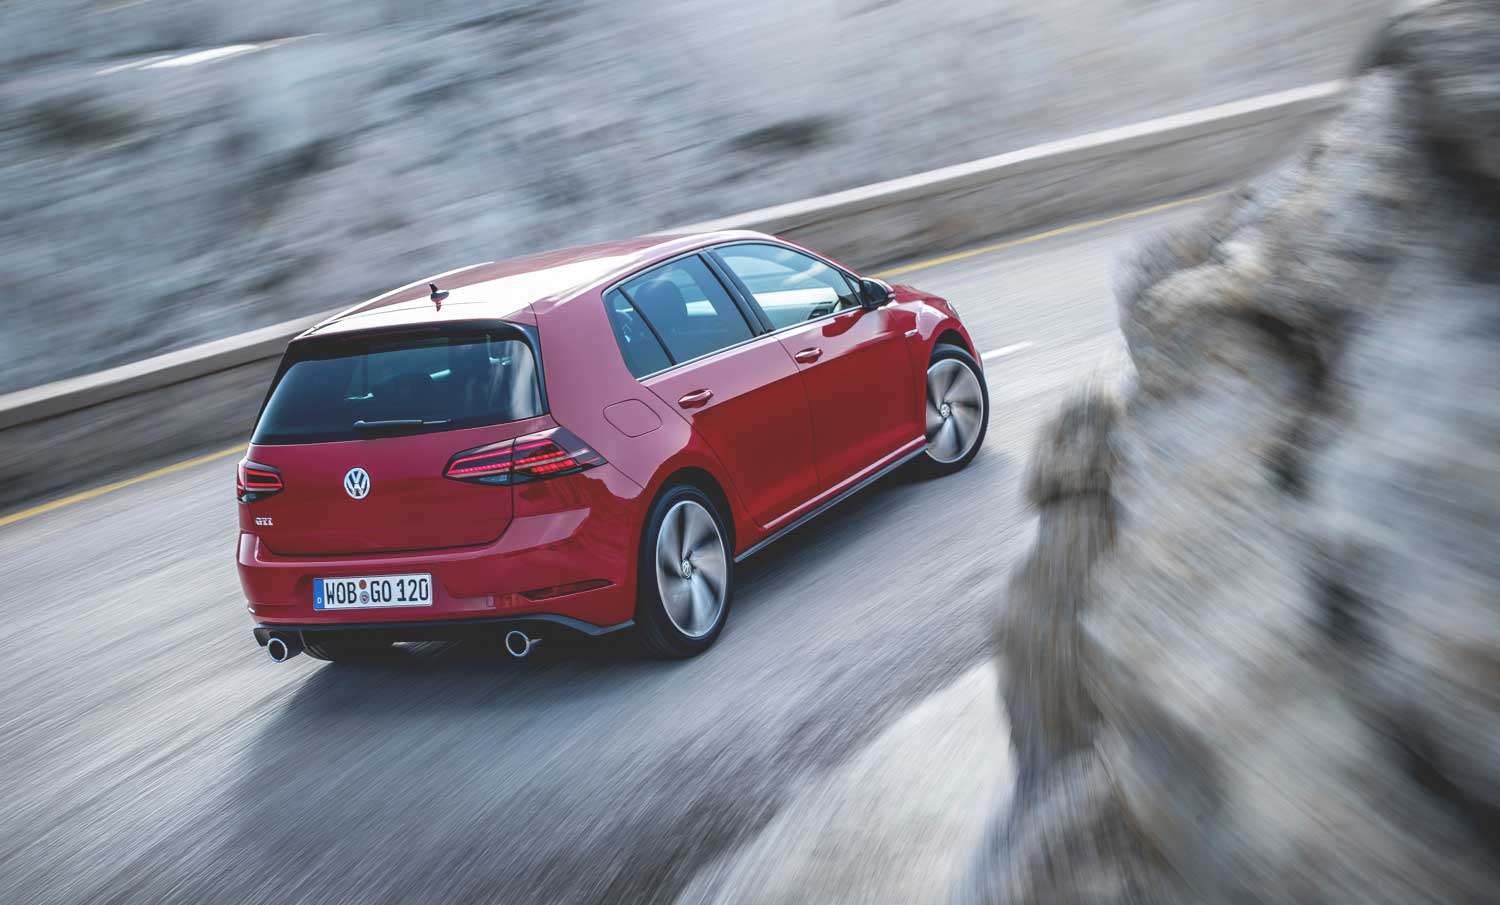 Red VW Golf GTI mk7 driving aggressively around a corner